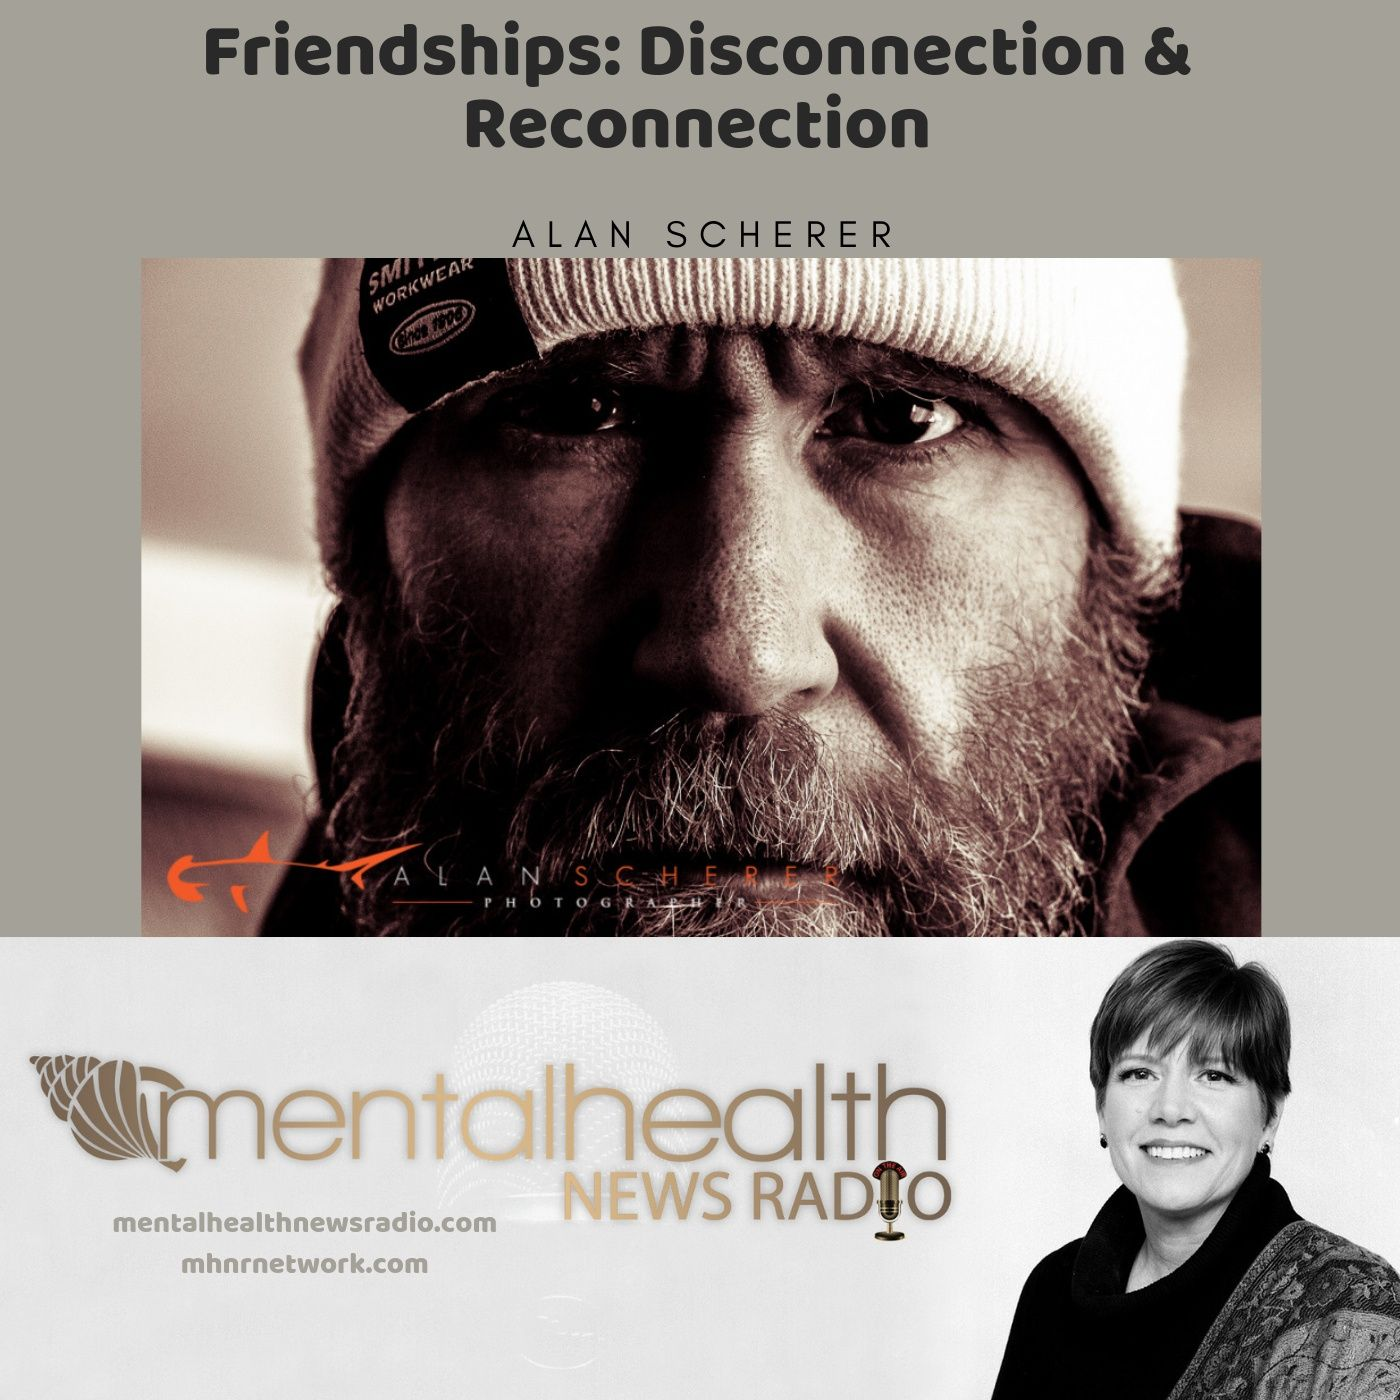 Mental Health News Radio - Friendships: Disconnection and Reconnection